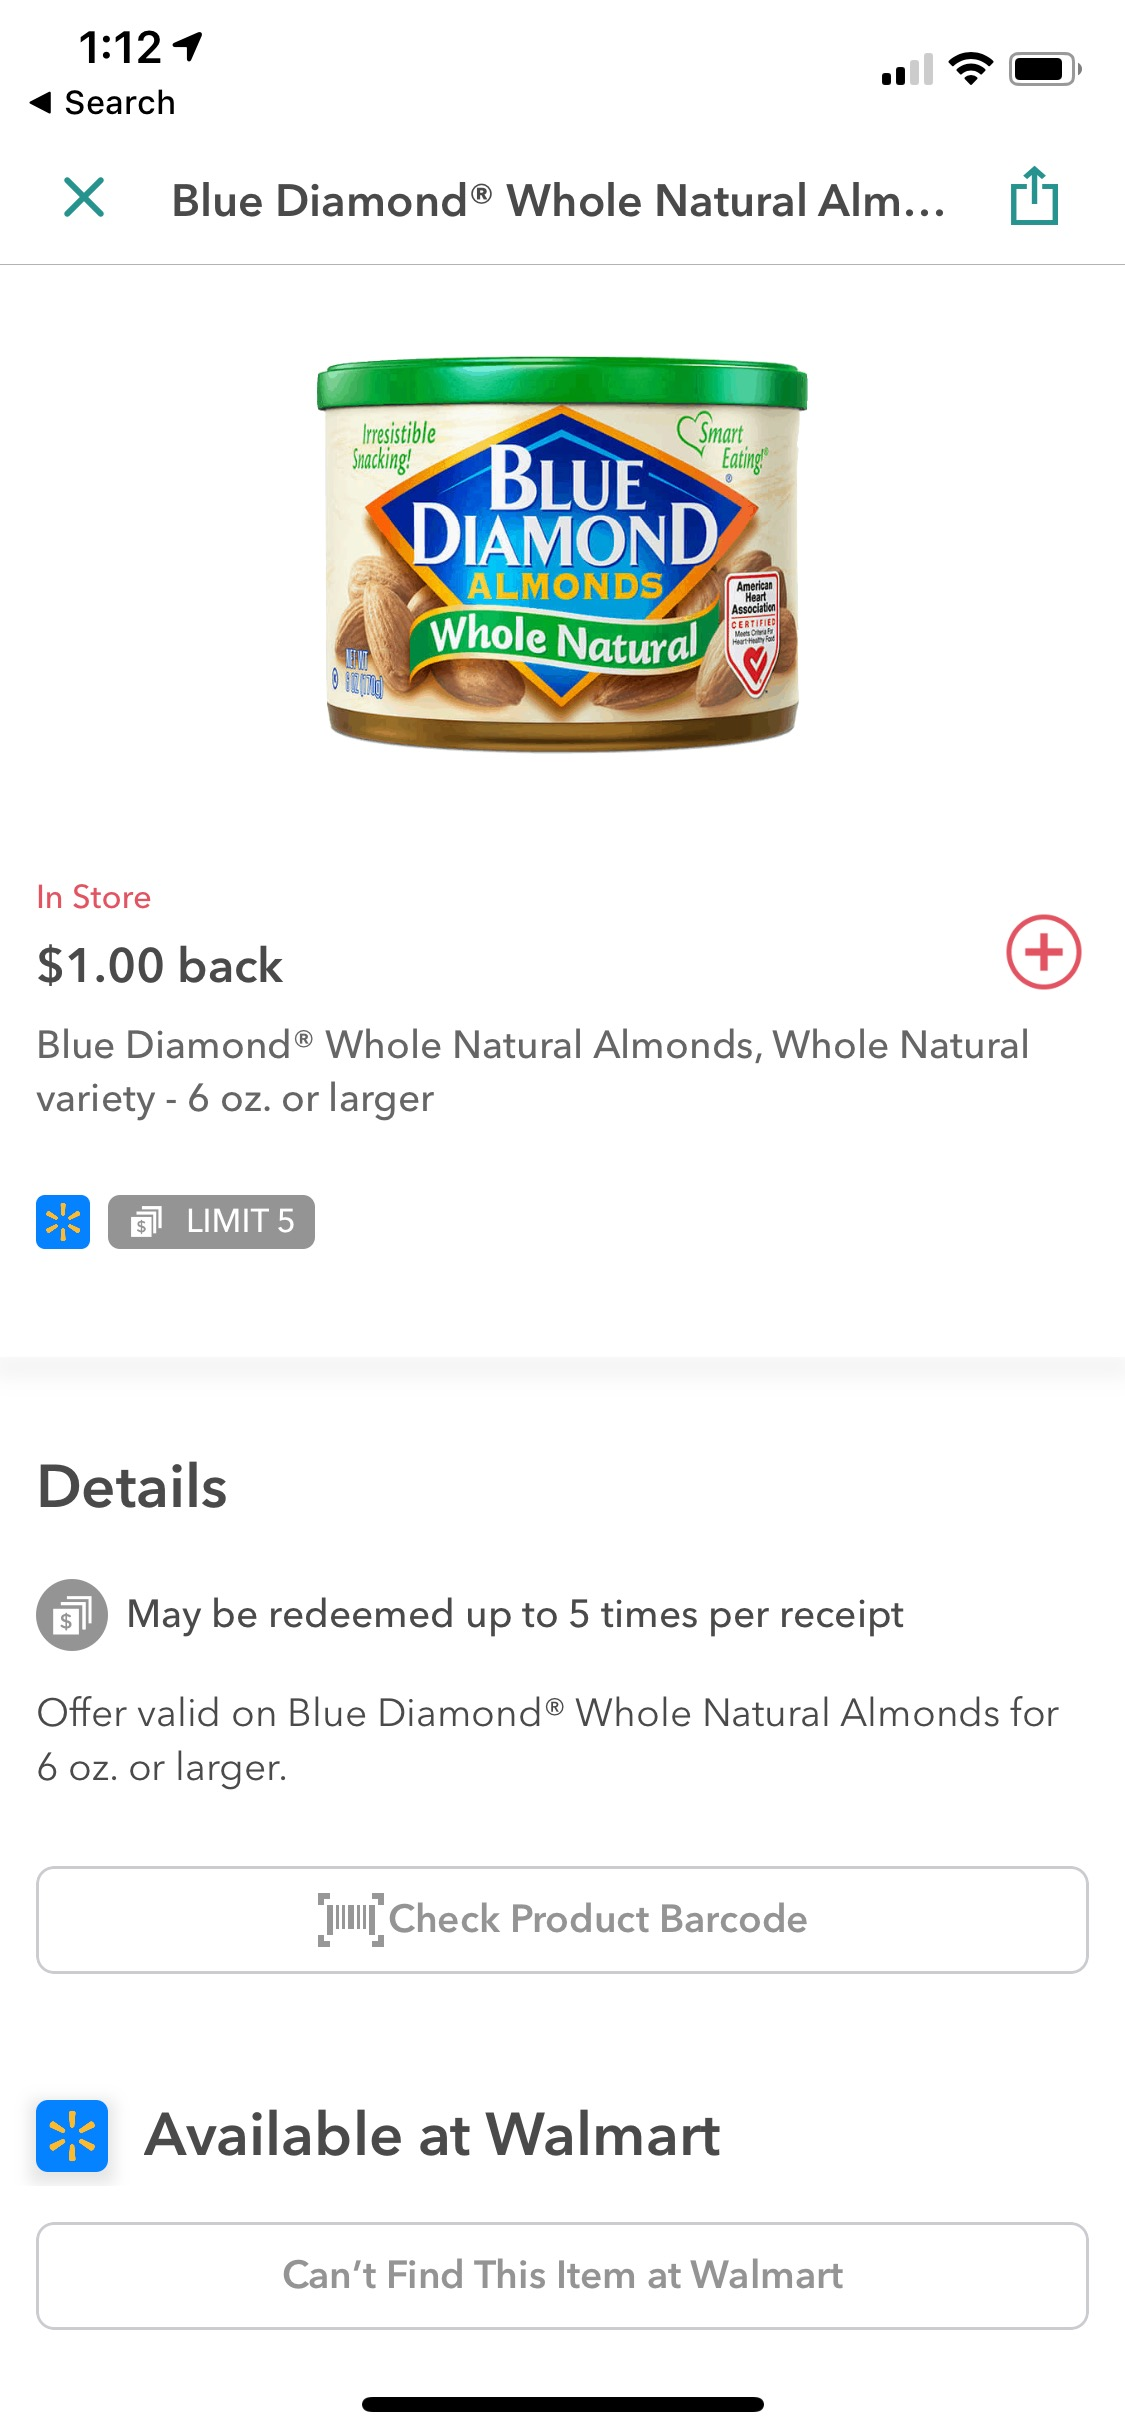 Blue Diamond Whole Natural Almonds Ibotta Offer